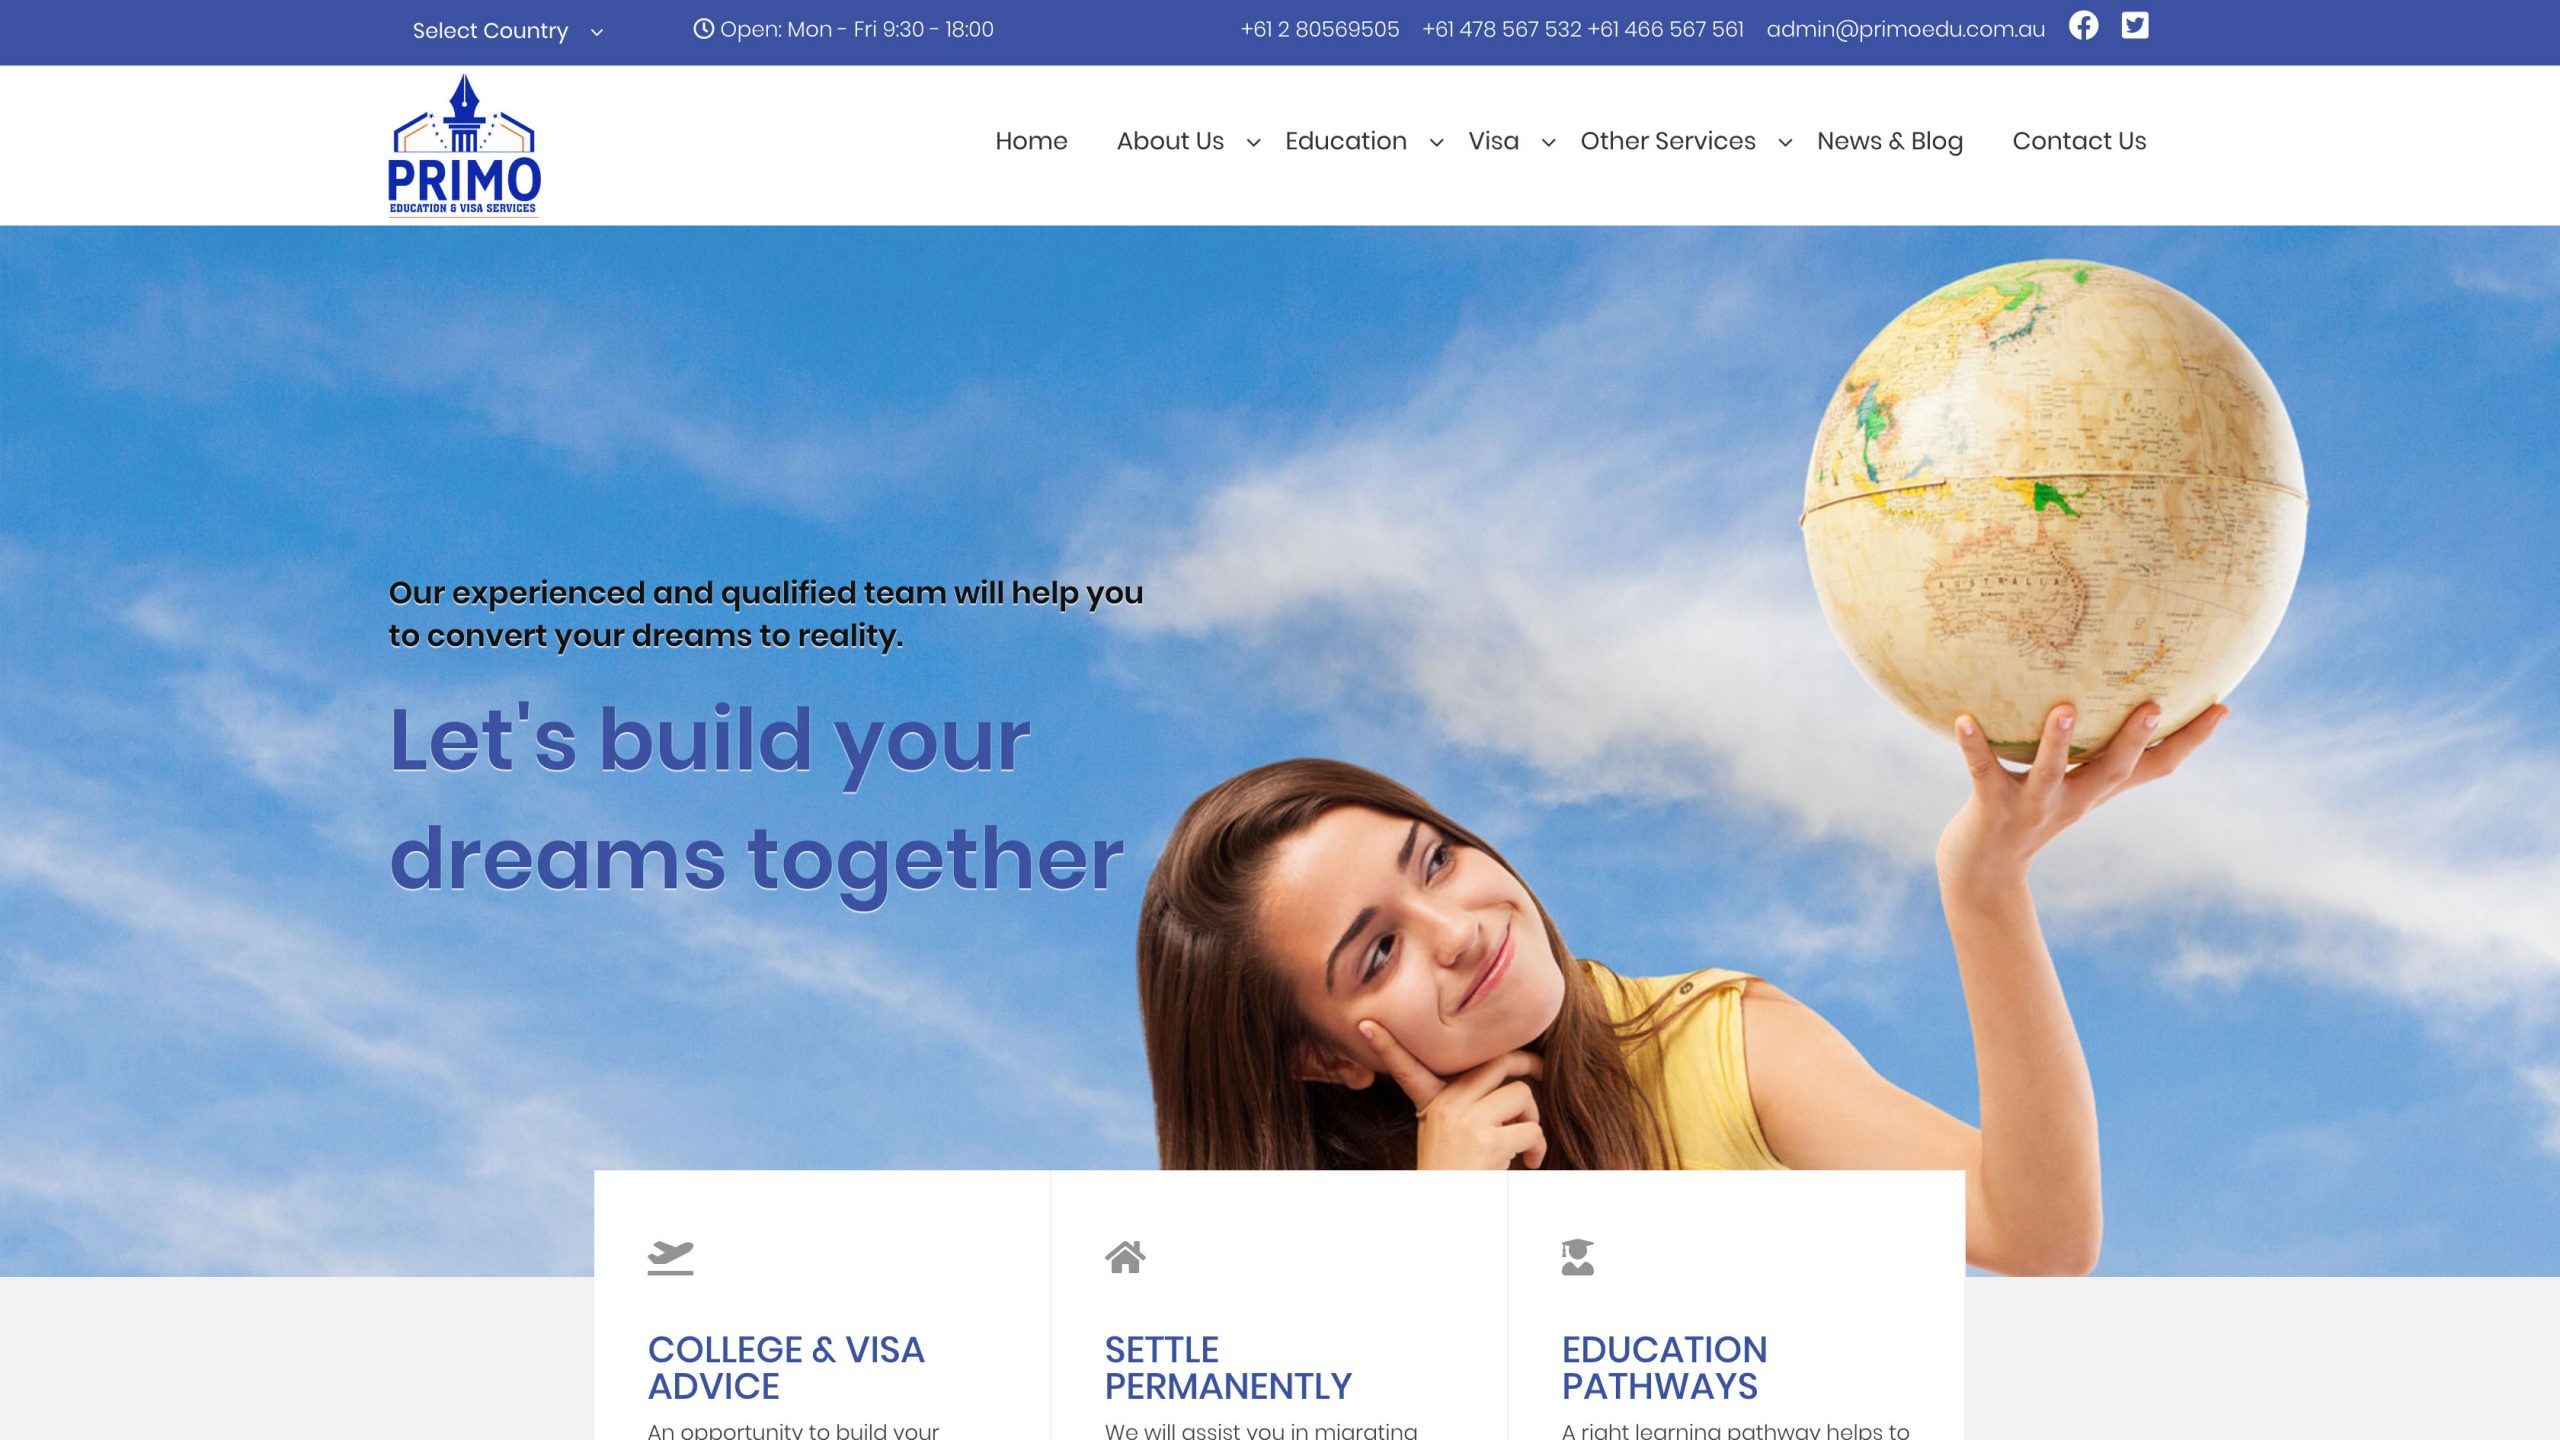 Primo Education and Visa Services